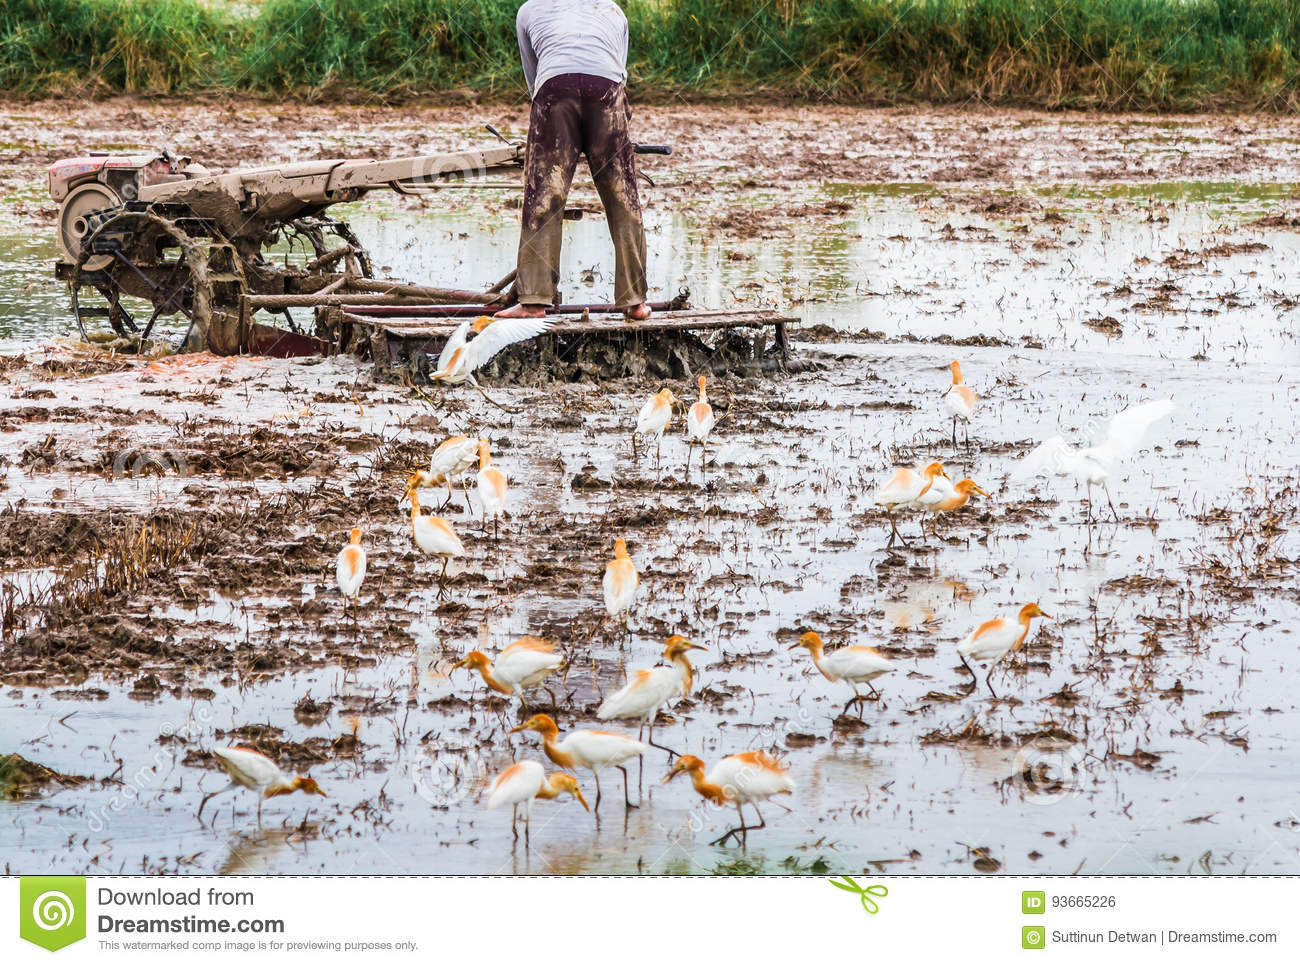 The farmer is plowed with a tractor in his farm and the birds ar